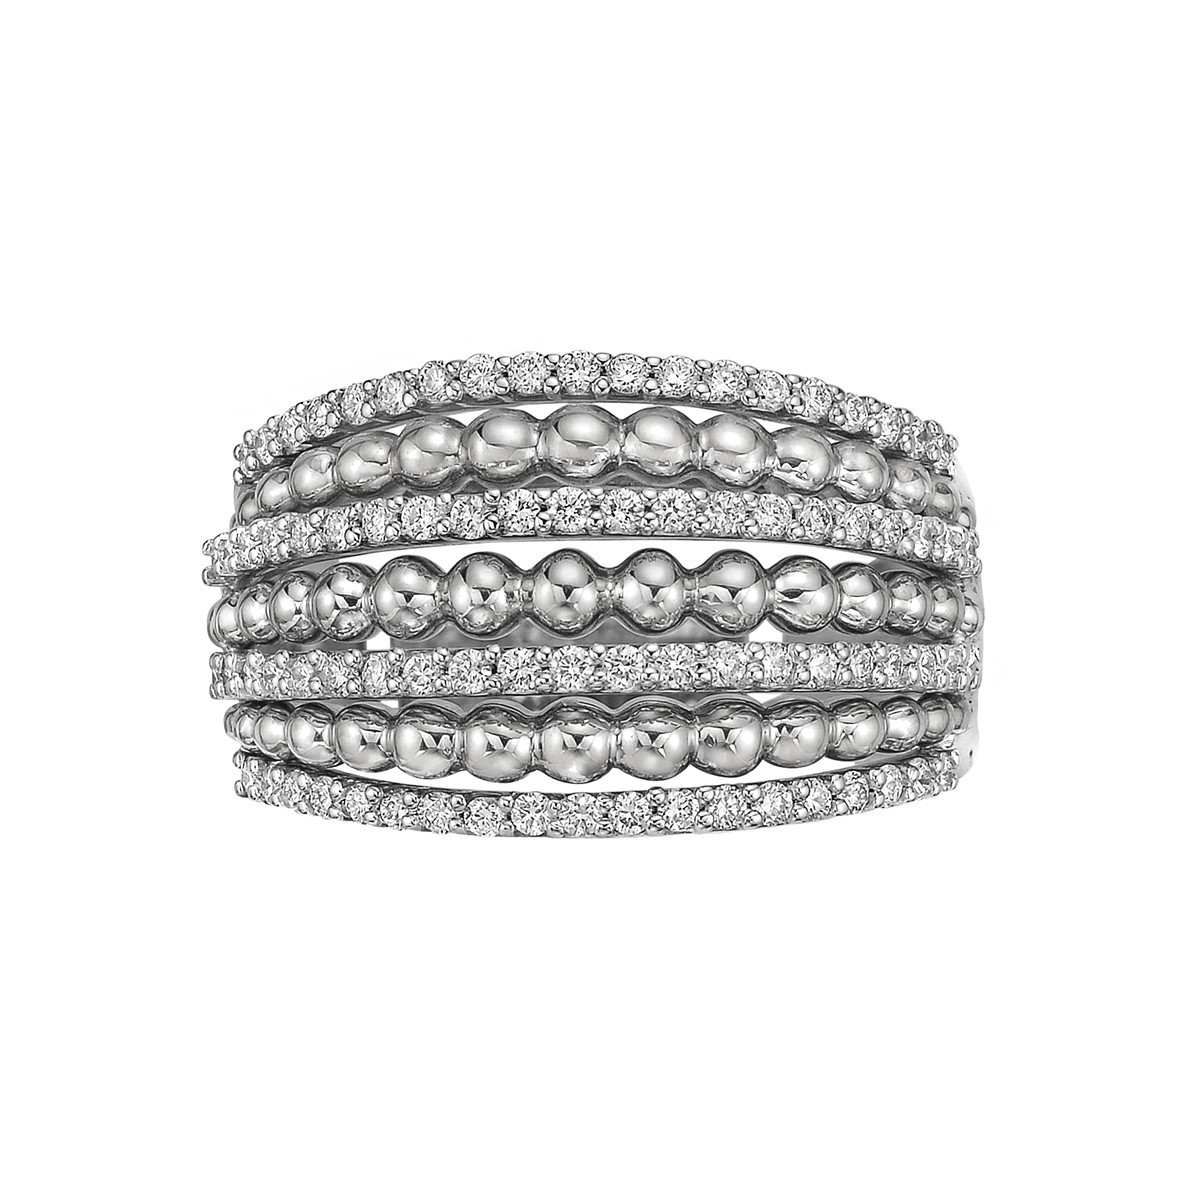 18k White Gold & Diamond 7-Row Ring